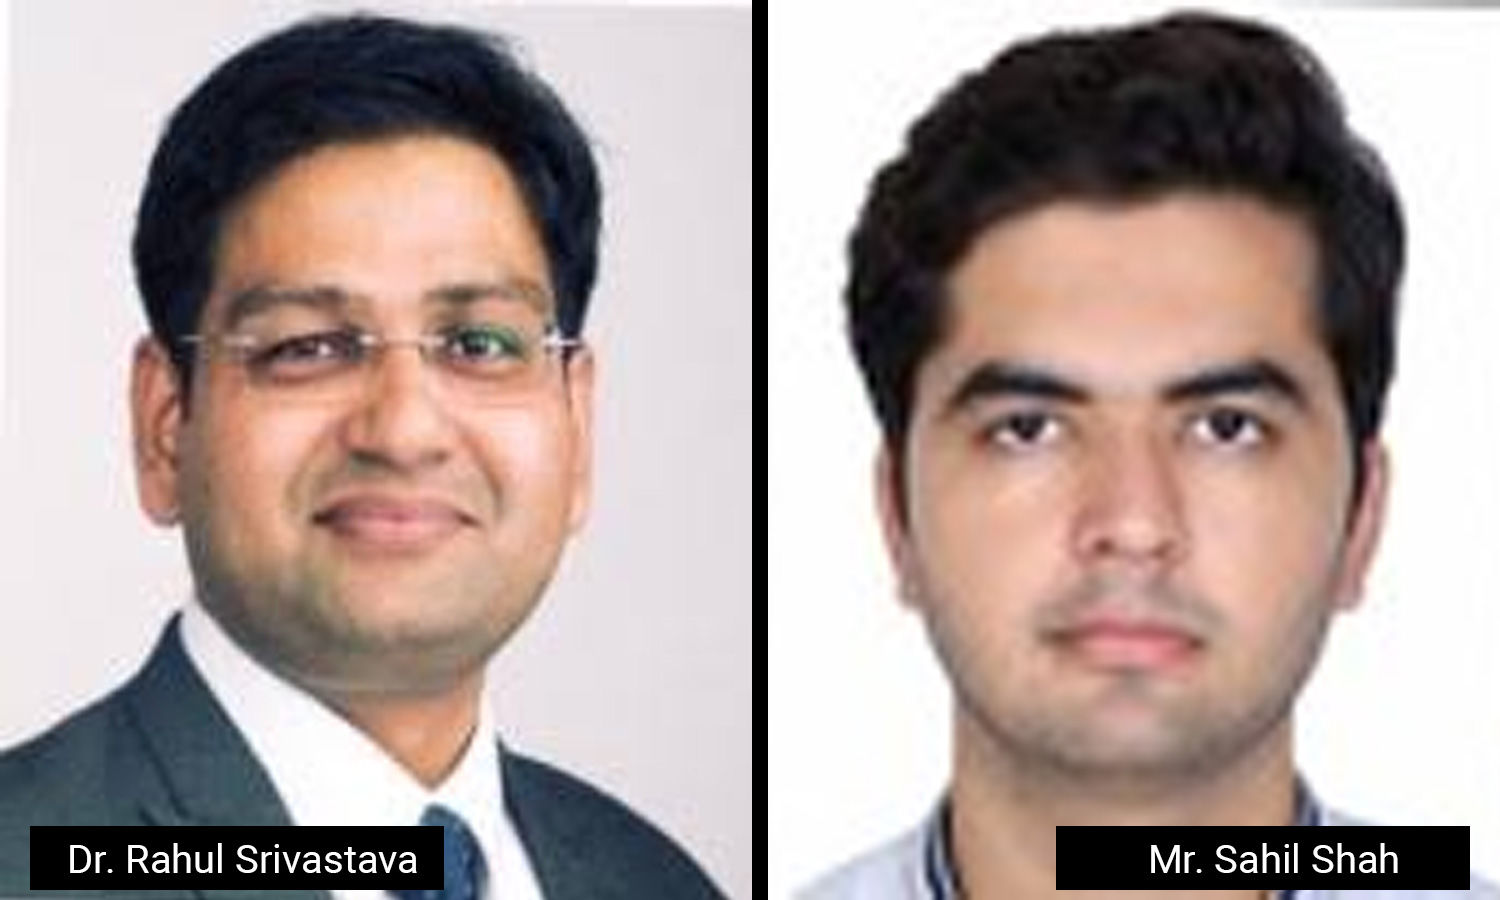 Hester Biosciences appoints Sahil Shah as CFO, Dr Rahul Srivastava as Vice President